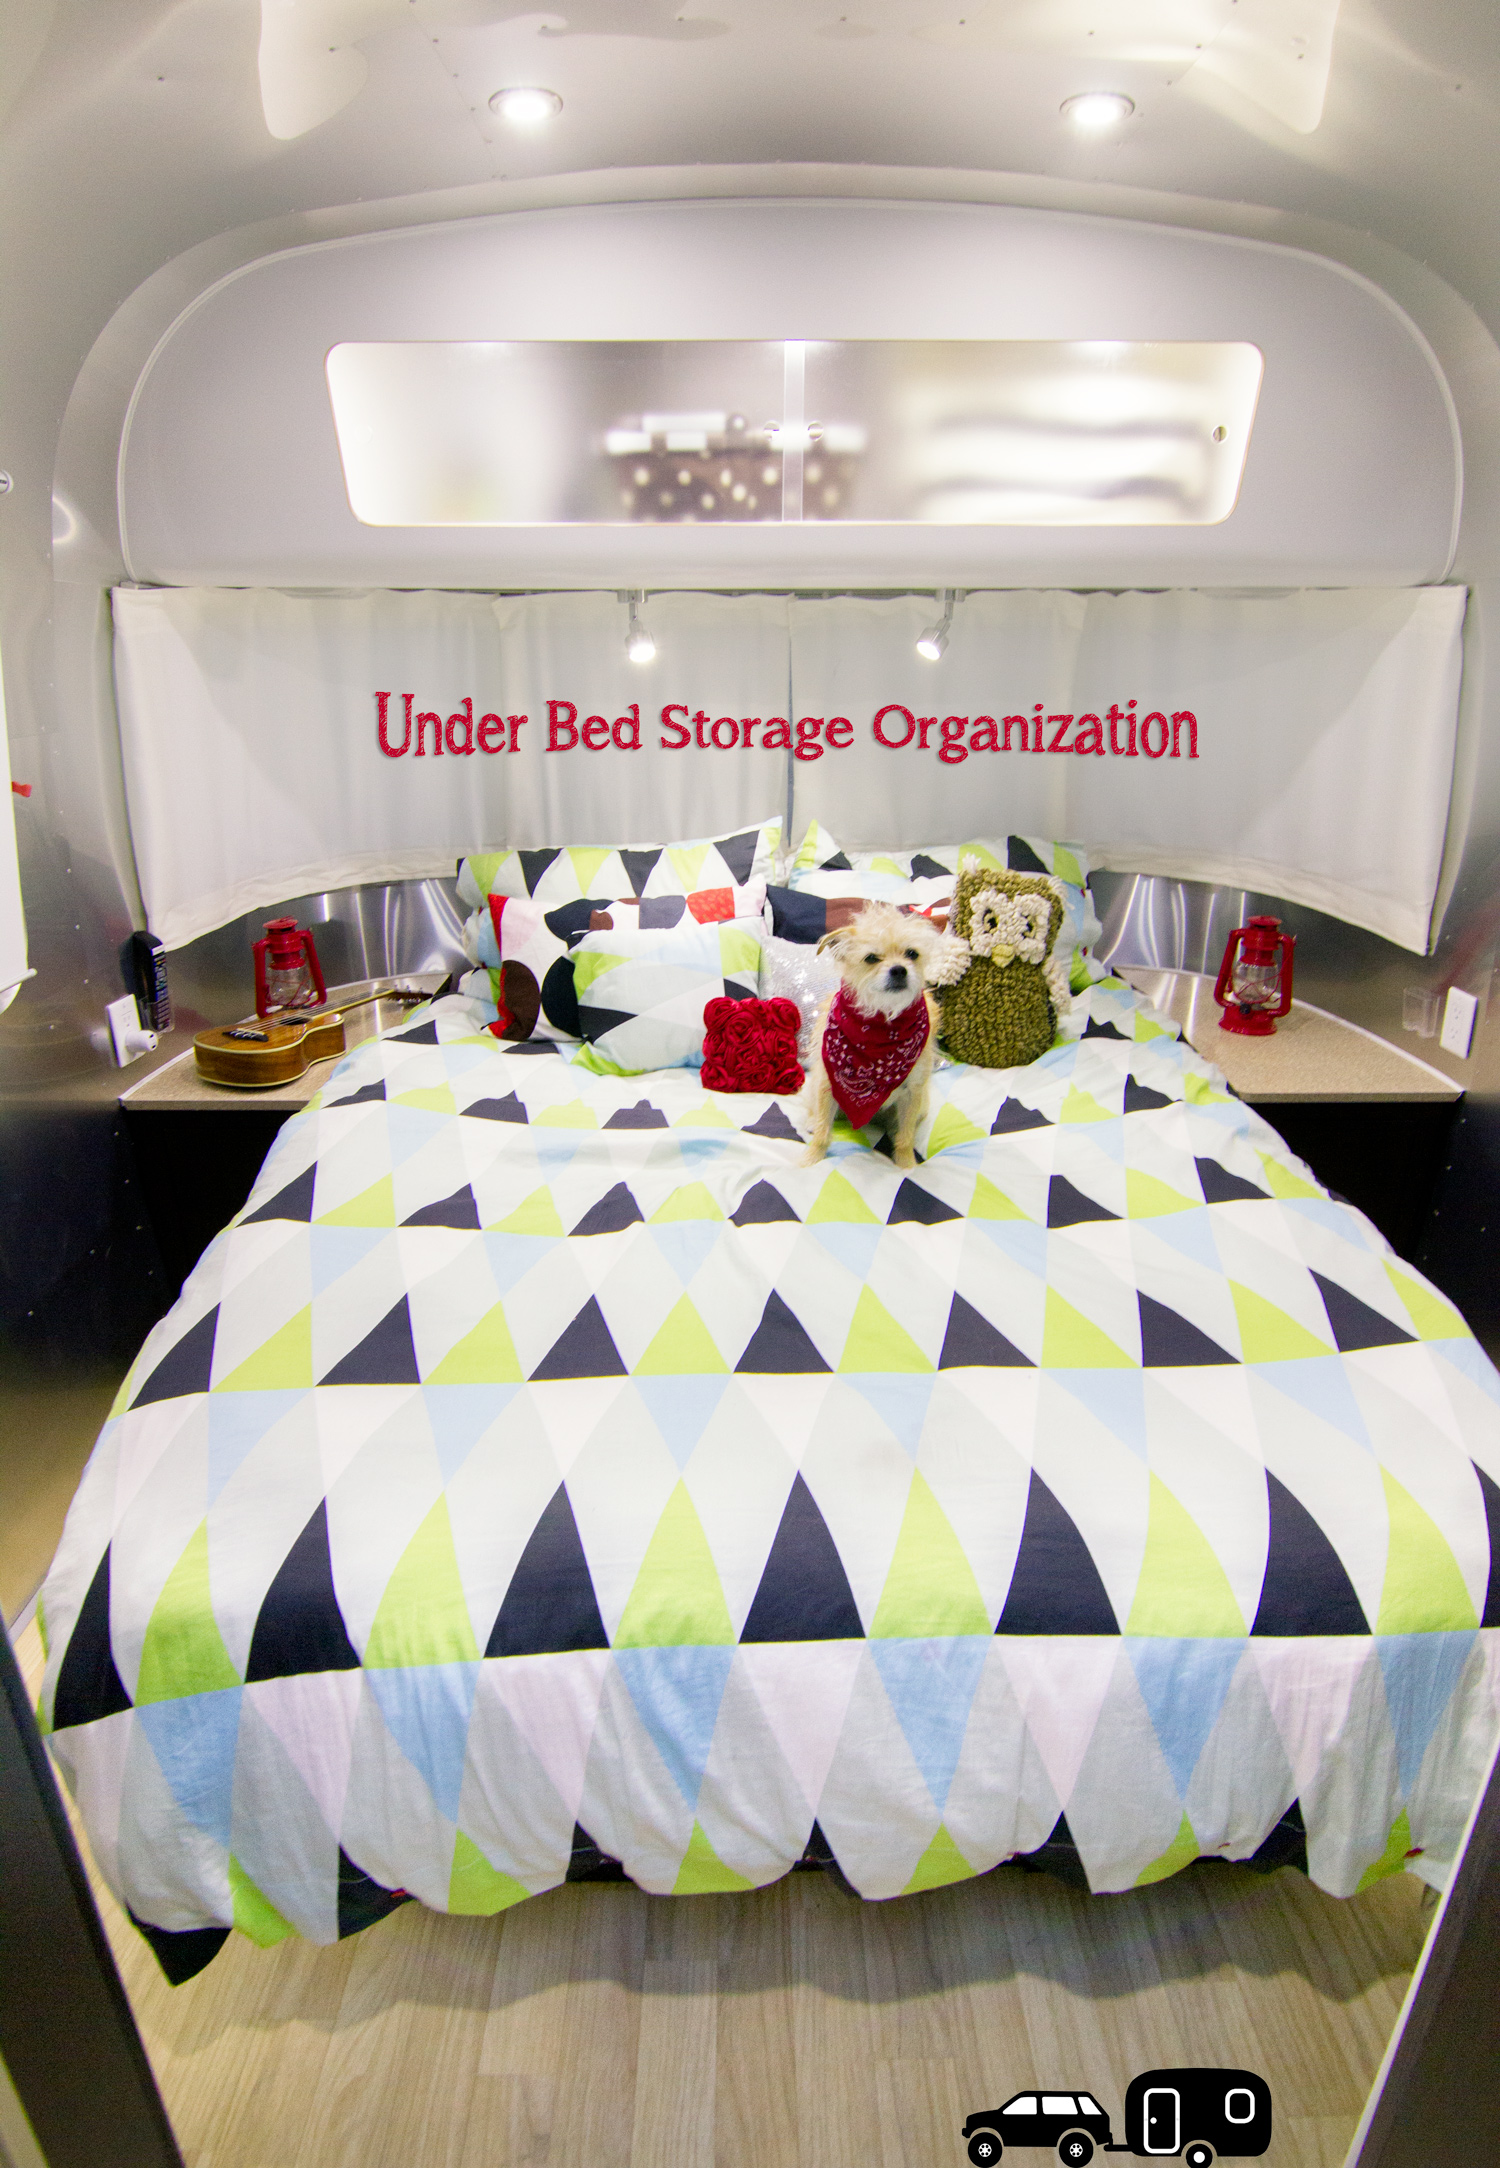 Under Bed Storage Organization on the Airstream  via J5MM.com // RV Lifestyle #Airstream Style